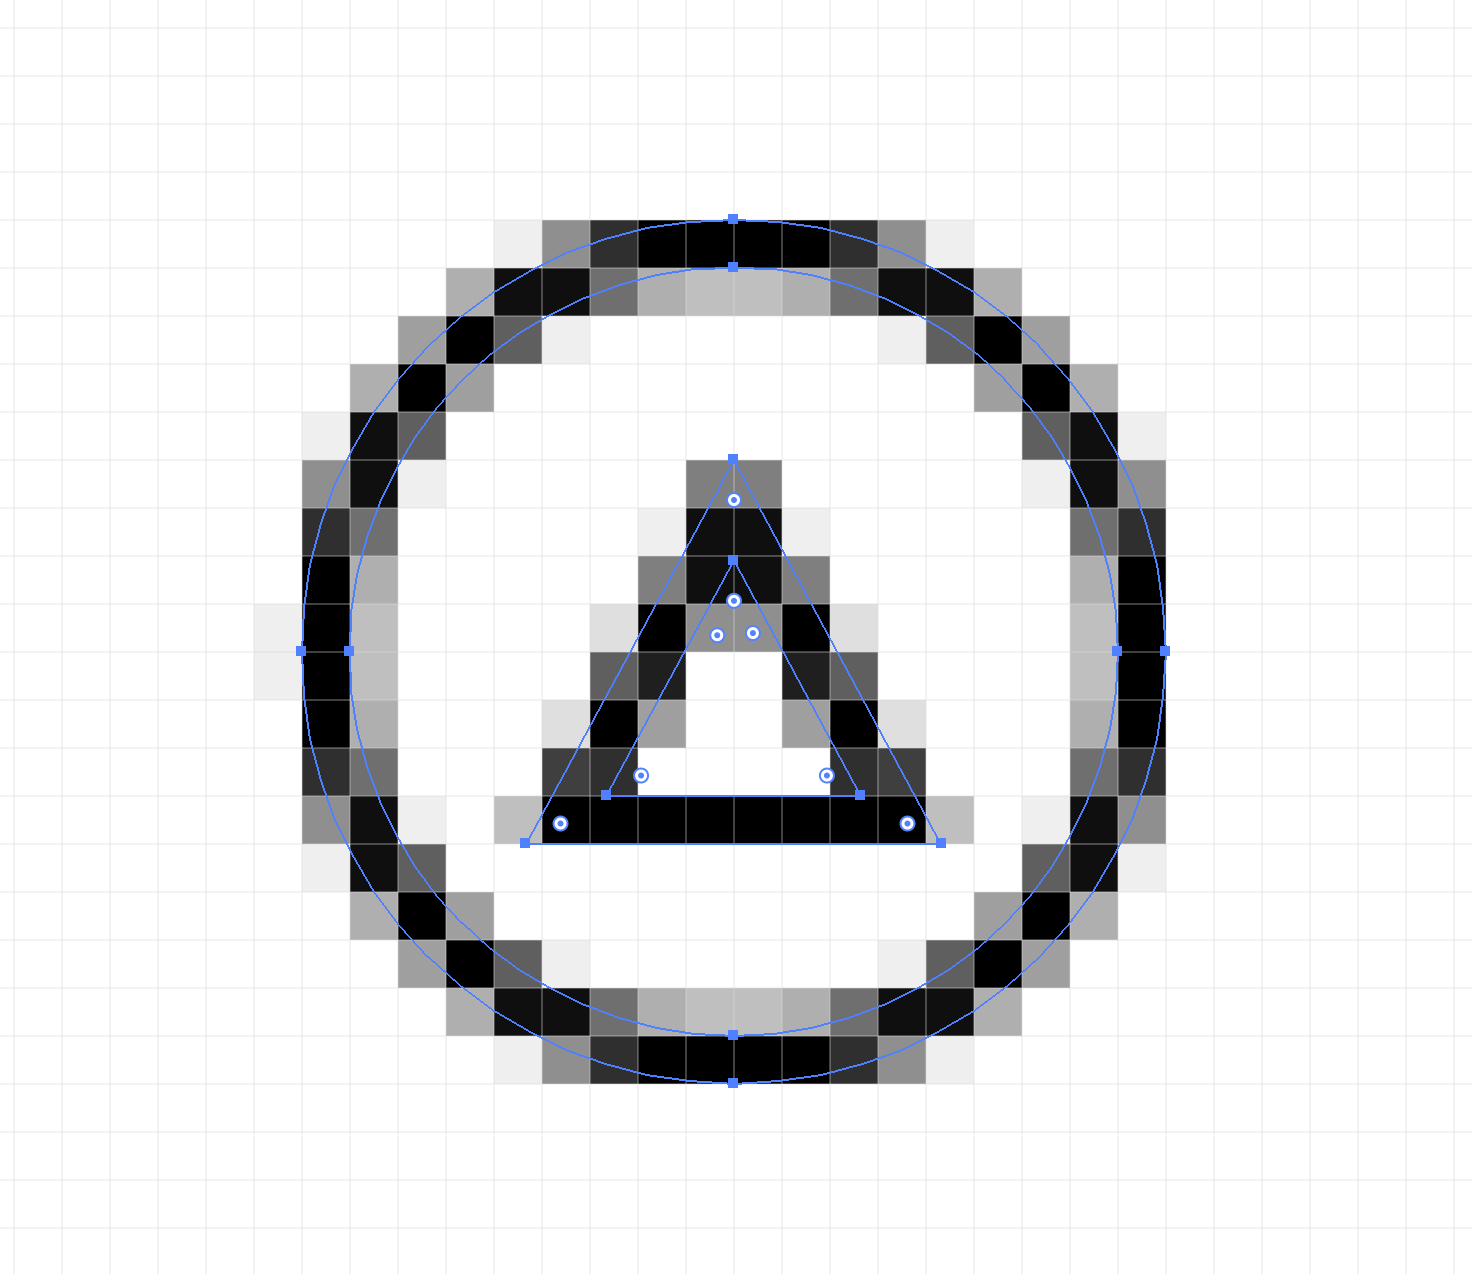 Pixel Perfect Shapes In Photoshop